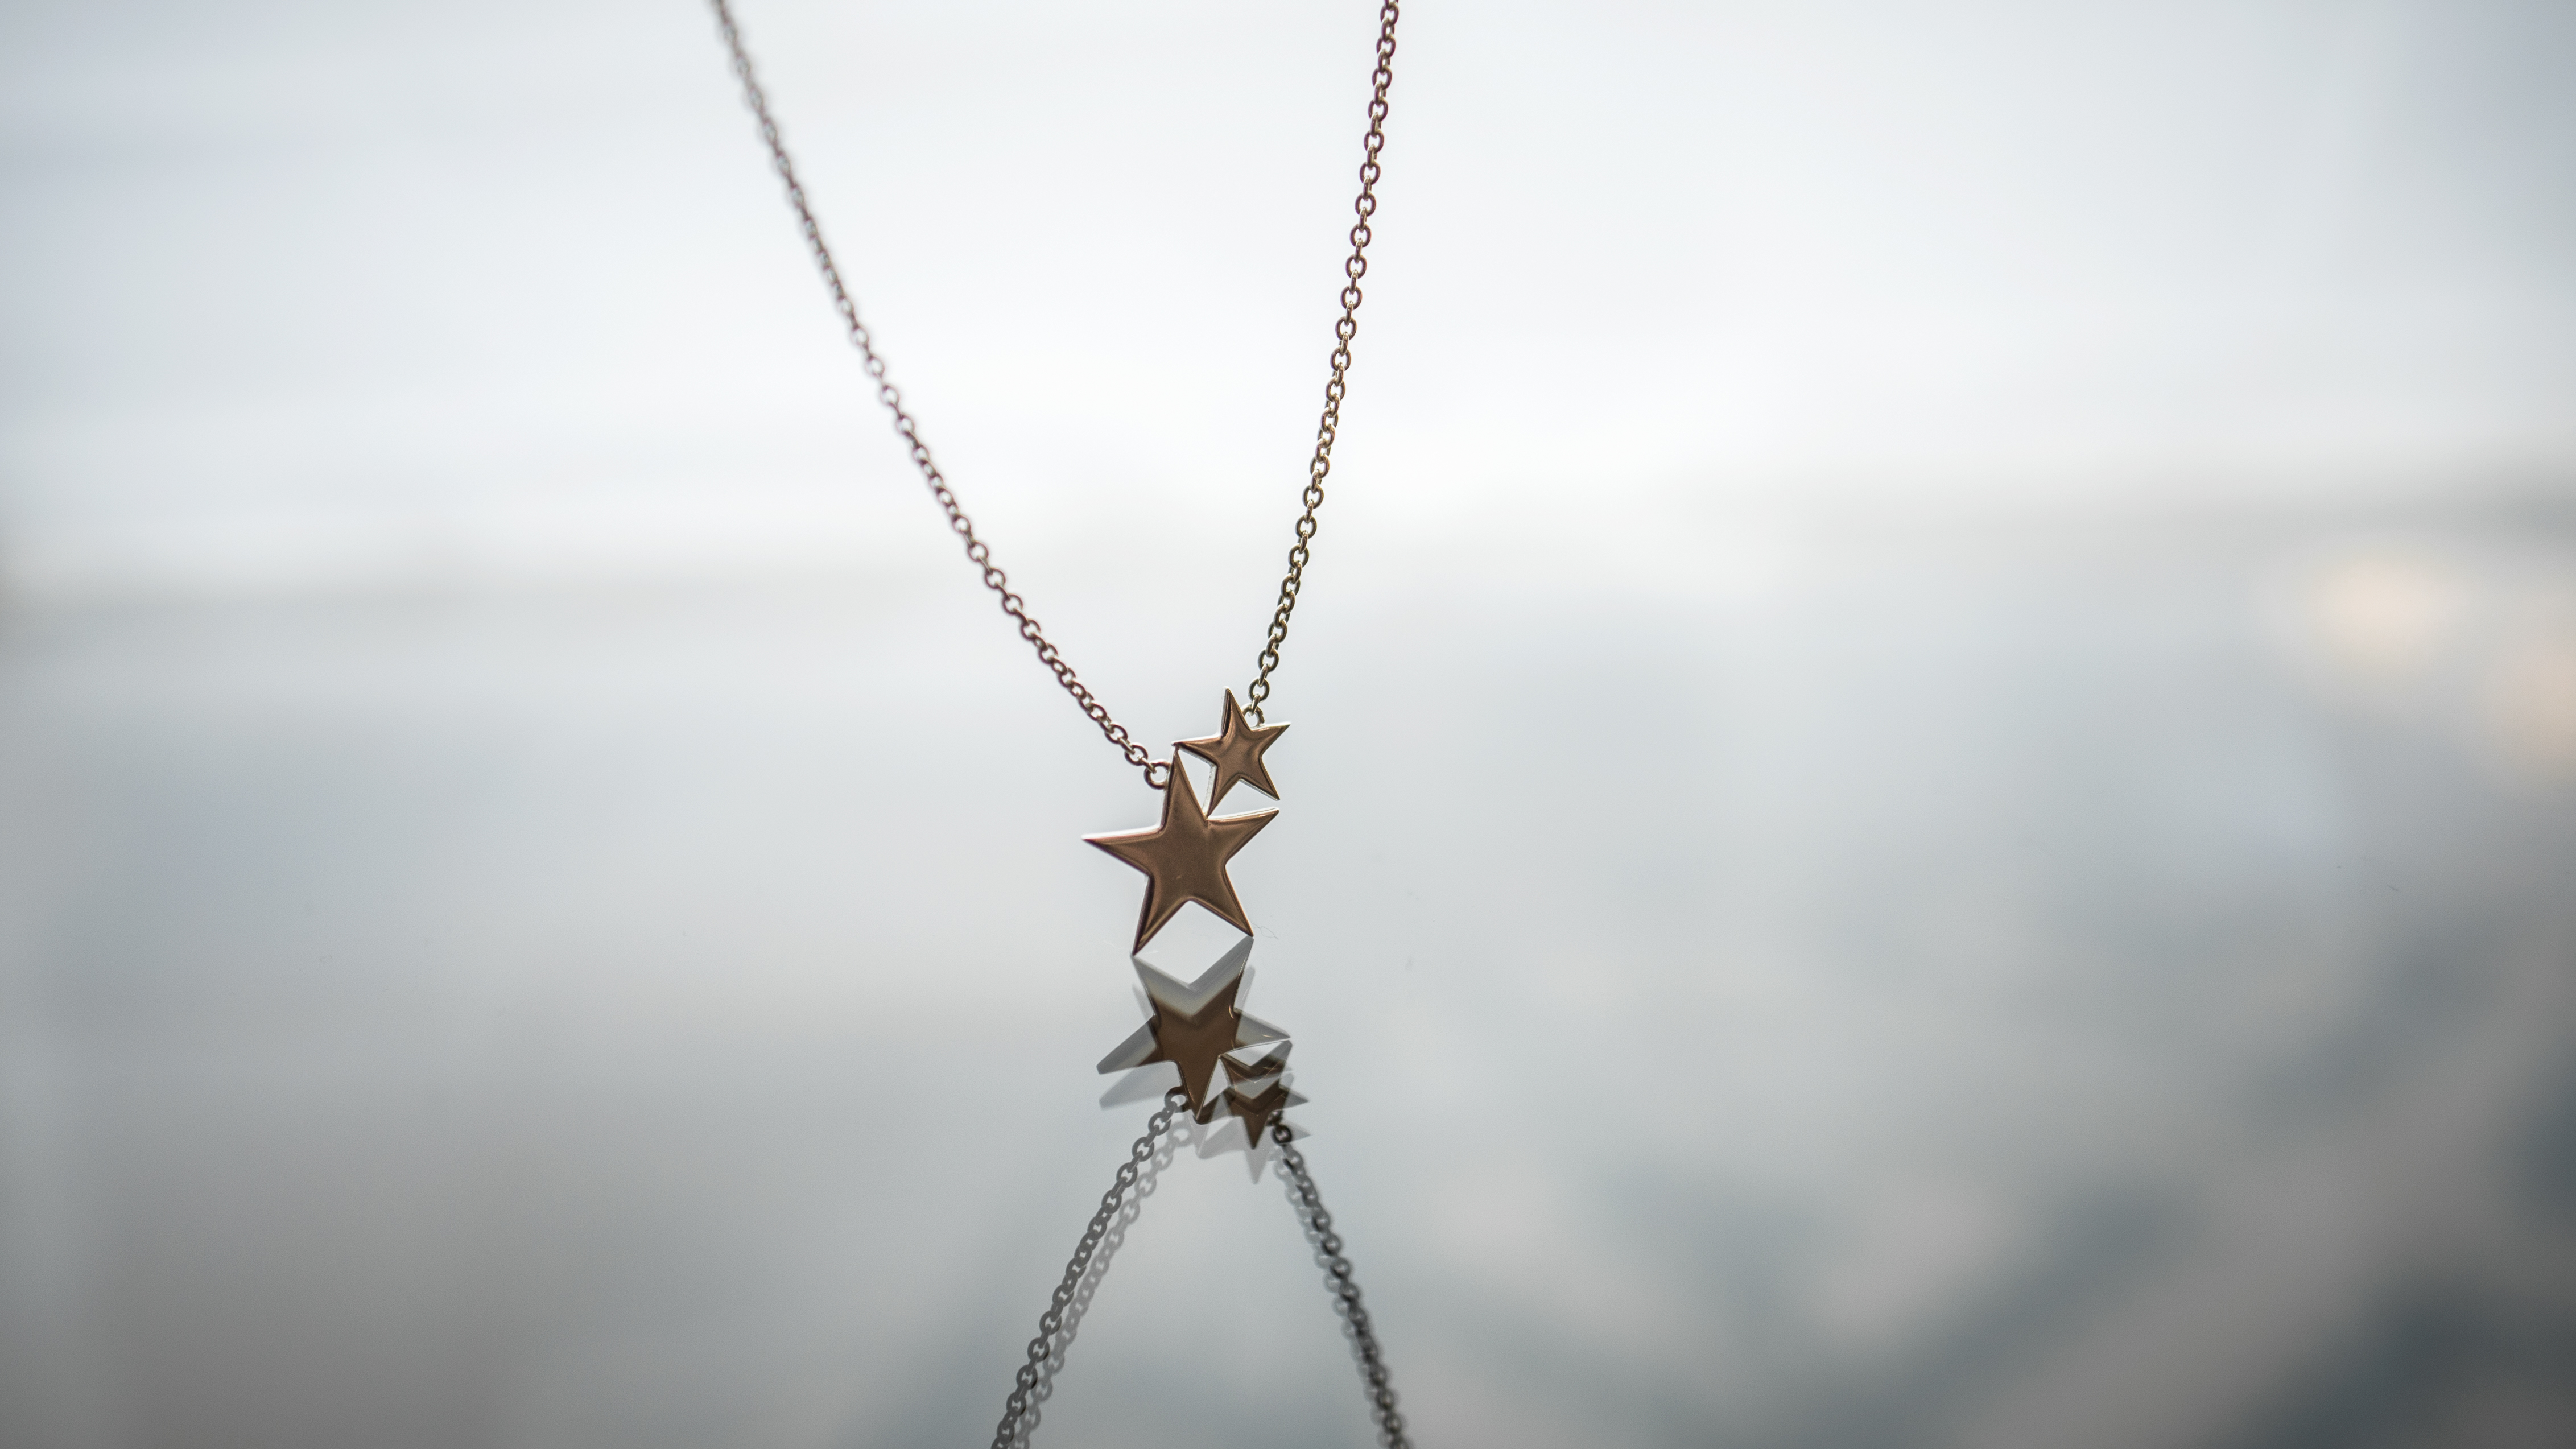 Star necklace.